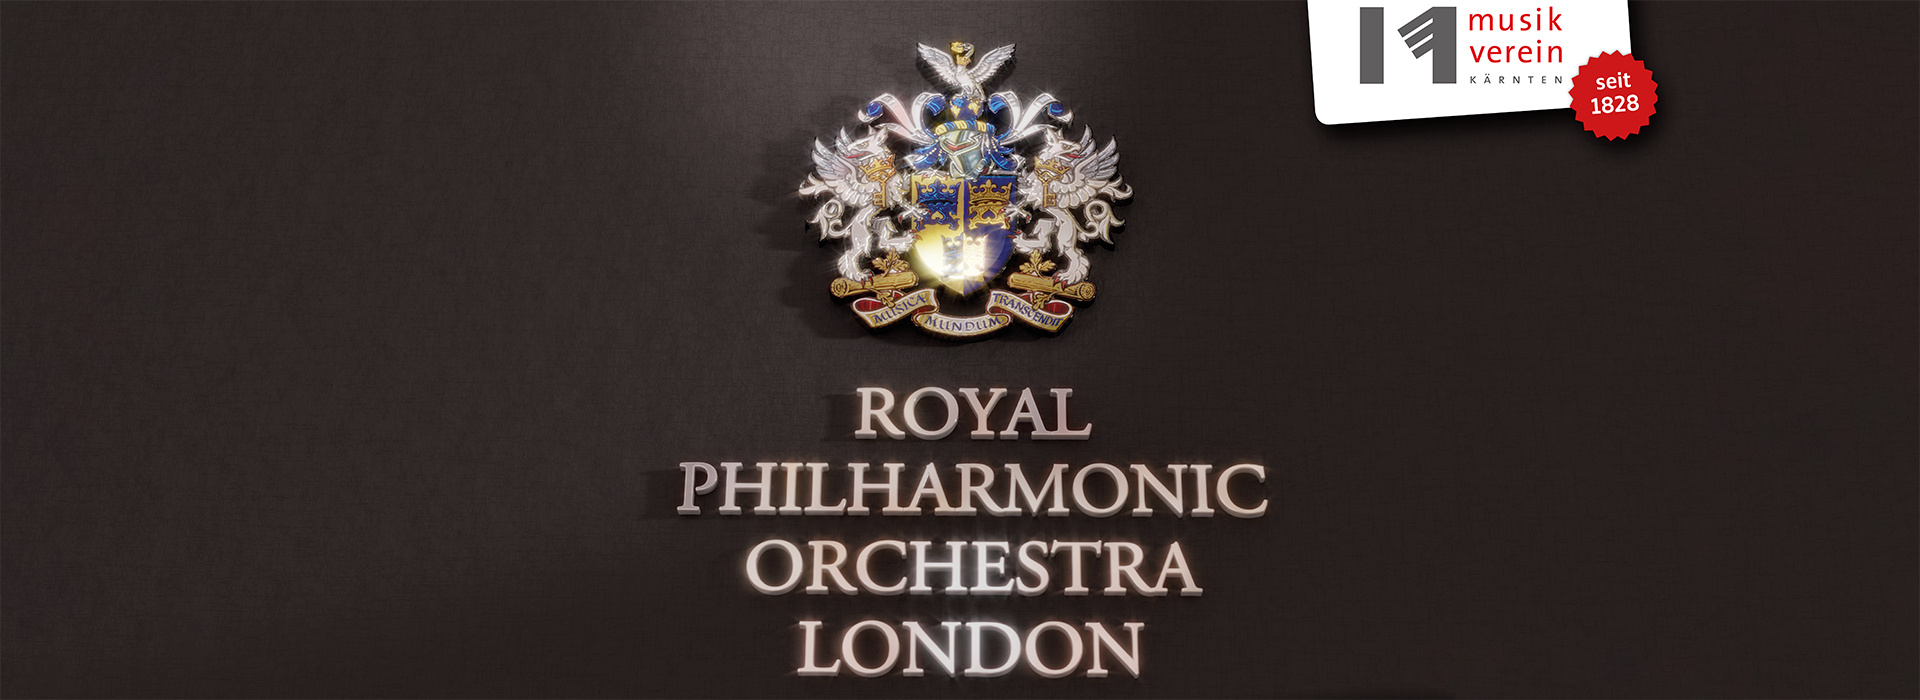 London Royal Philharmonic Orchestra